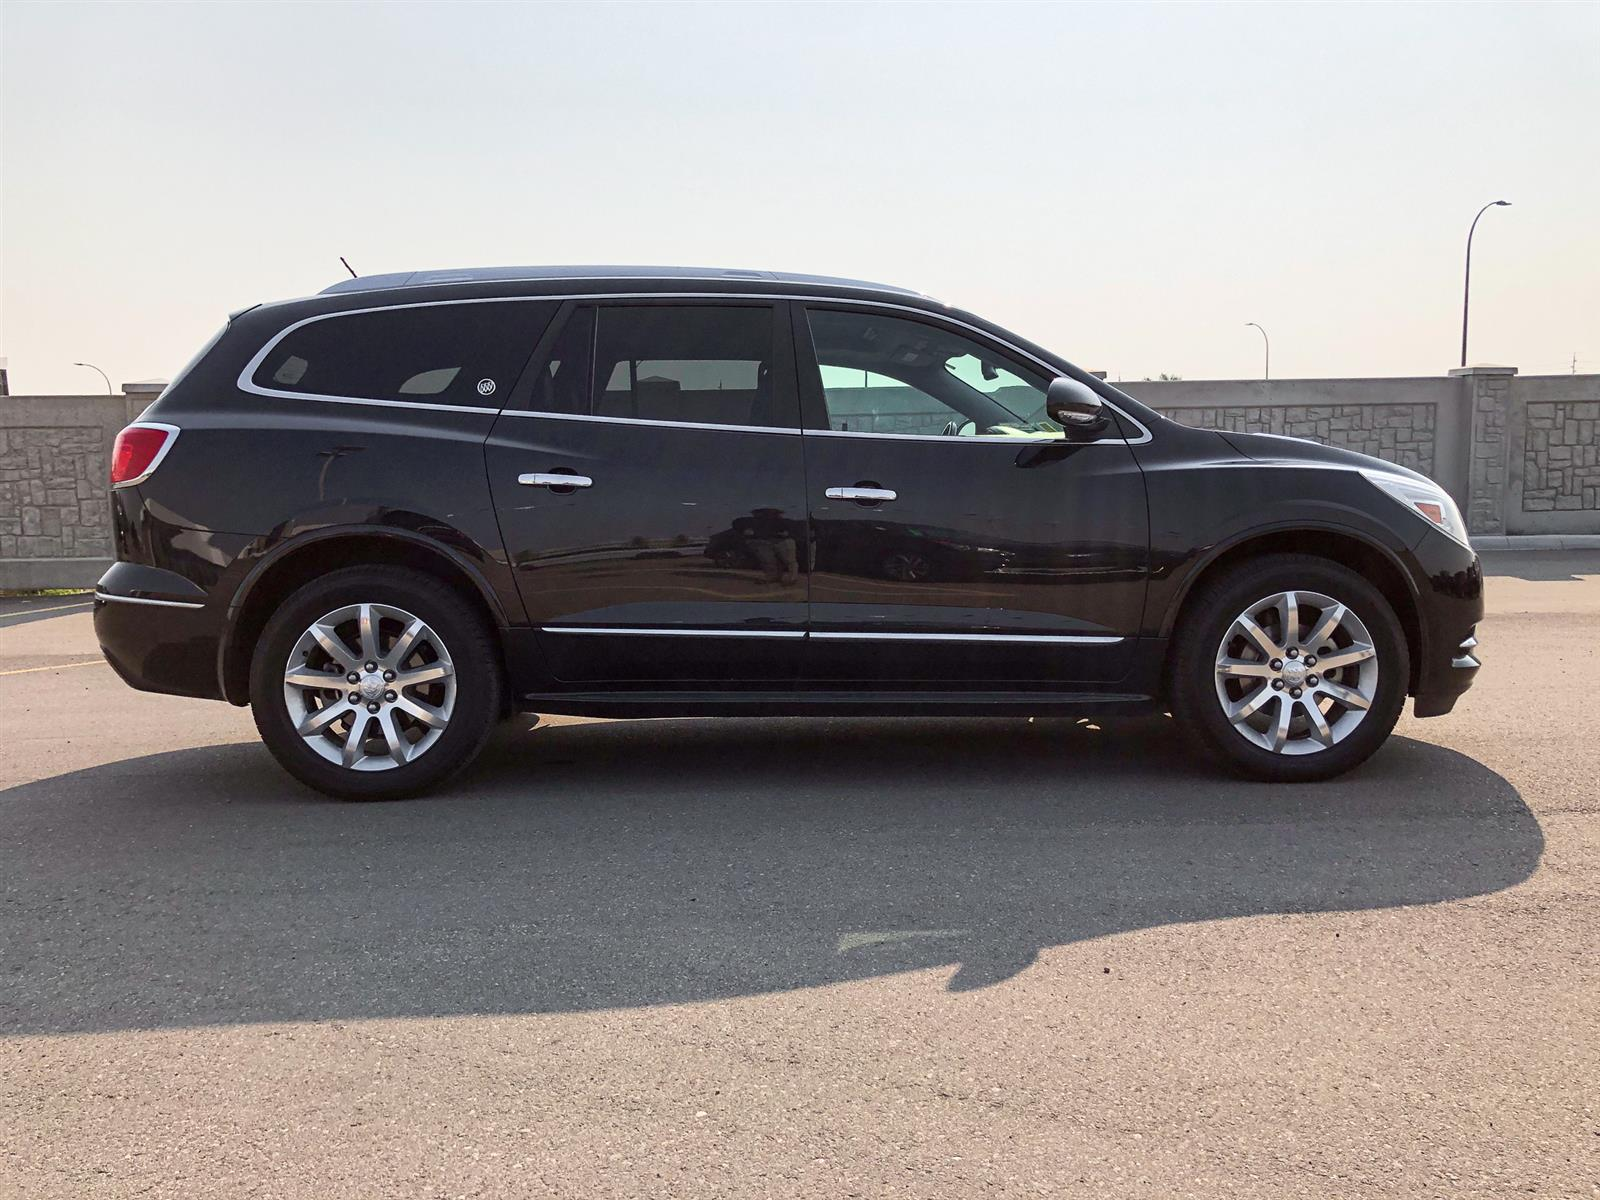 2014 Buick Enclave PREMIUM | 3.6L V6 | AWD | SUNROOF | FULLY LOADED